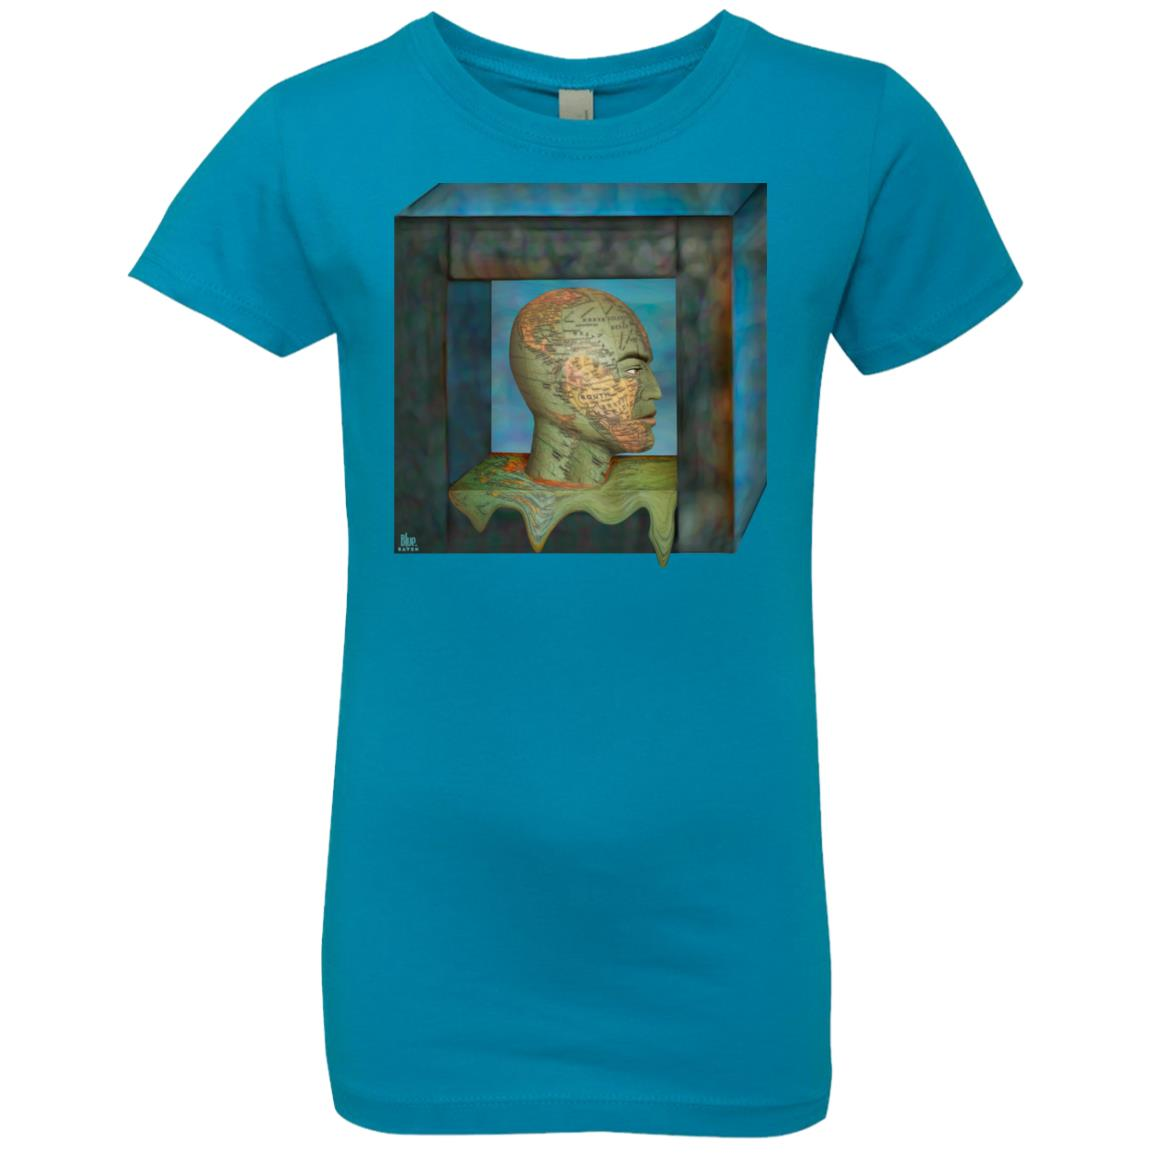 boxed in - Girl's Premium Cotton T-Shirt